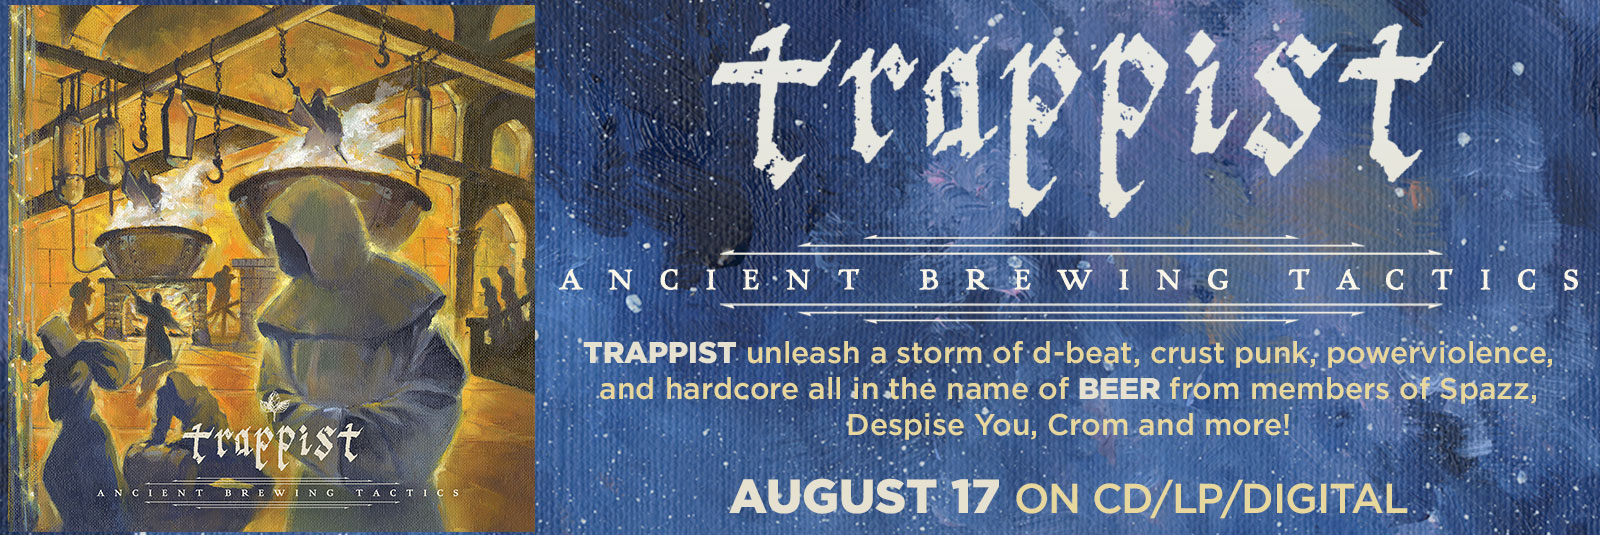 trappist-ancient-brewing-tactics-powerviolence-relapse-august-17